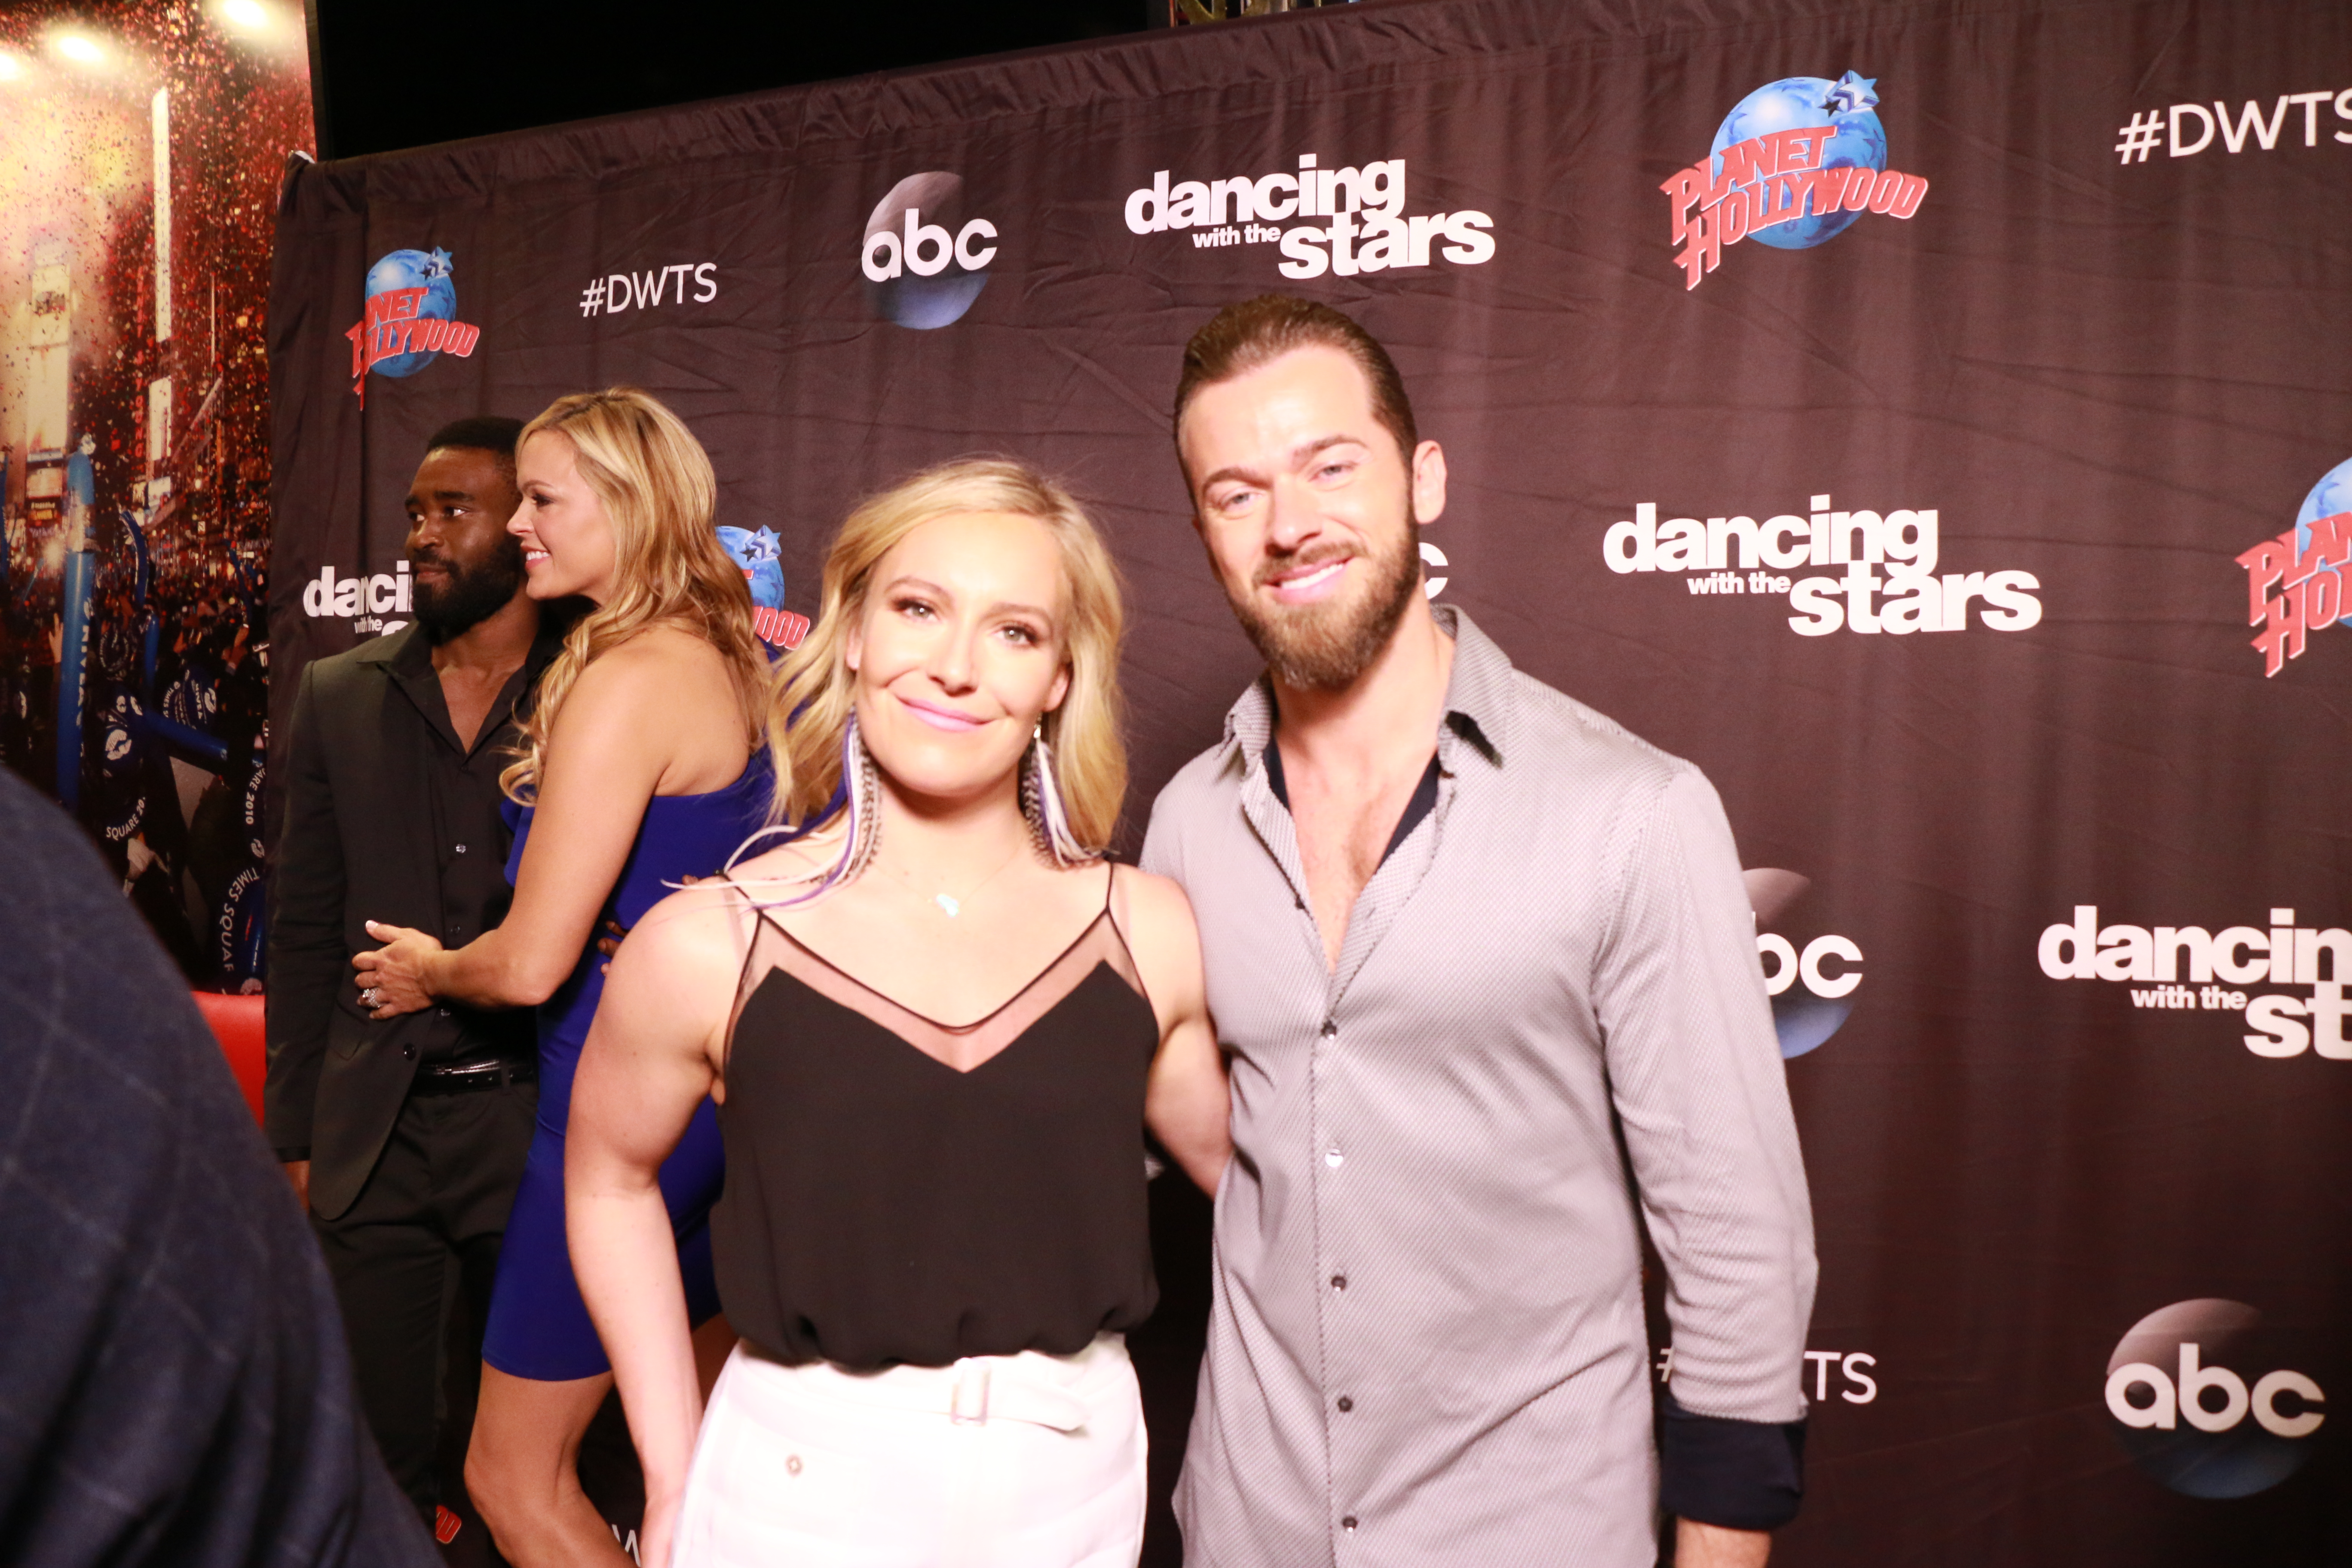 <div class='meta'><div class='origin-logo' data-origin='none'></div><span class='caption-text' data-credit='Heather Harkins/WABC'>Jamie Anderson with Artem Chigvintsev on the red carpet of the ''Dancing with the Stars'' cast announcement on ''Good Morning America.''</span></div>